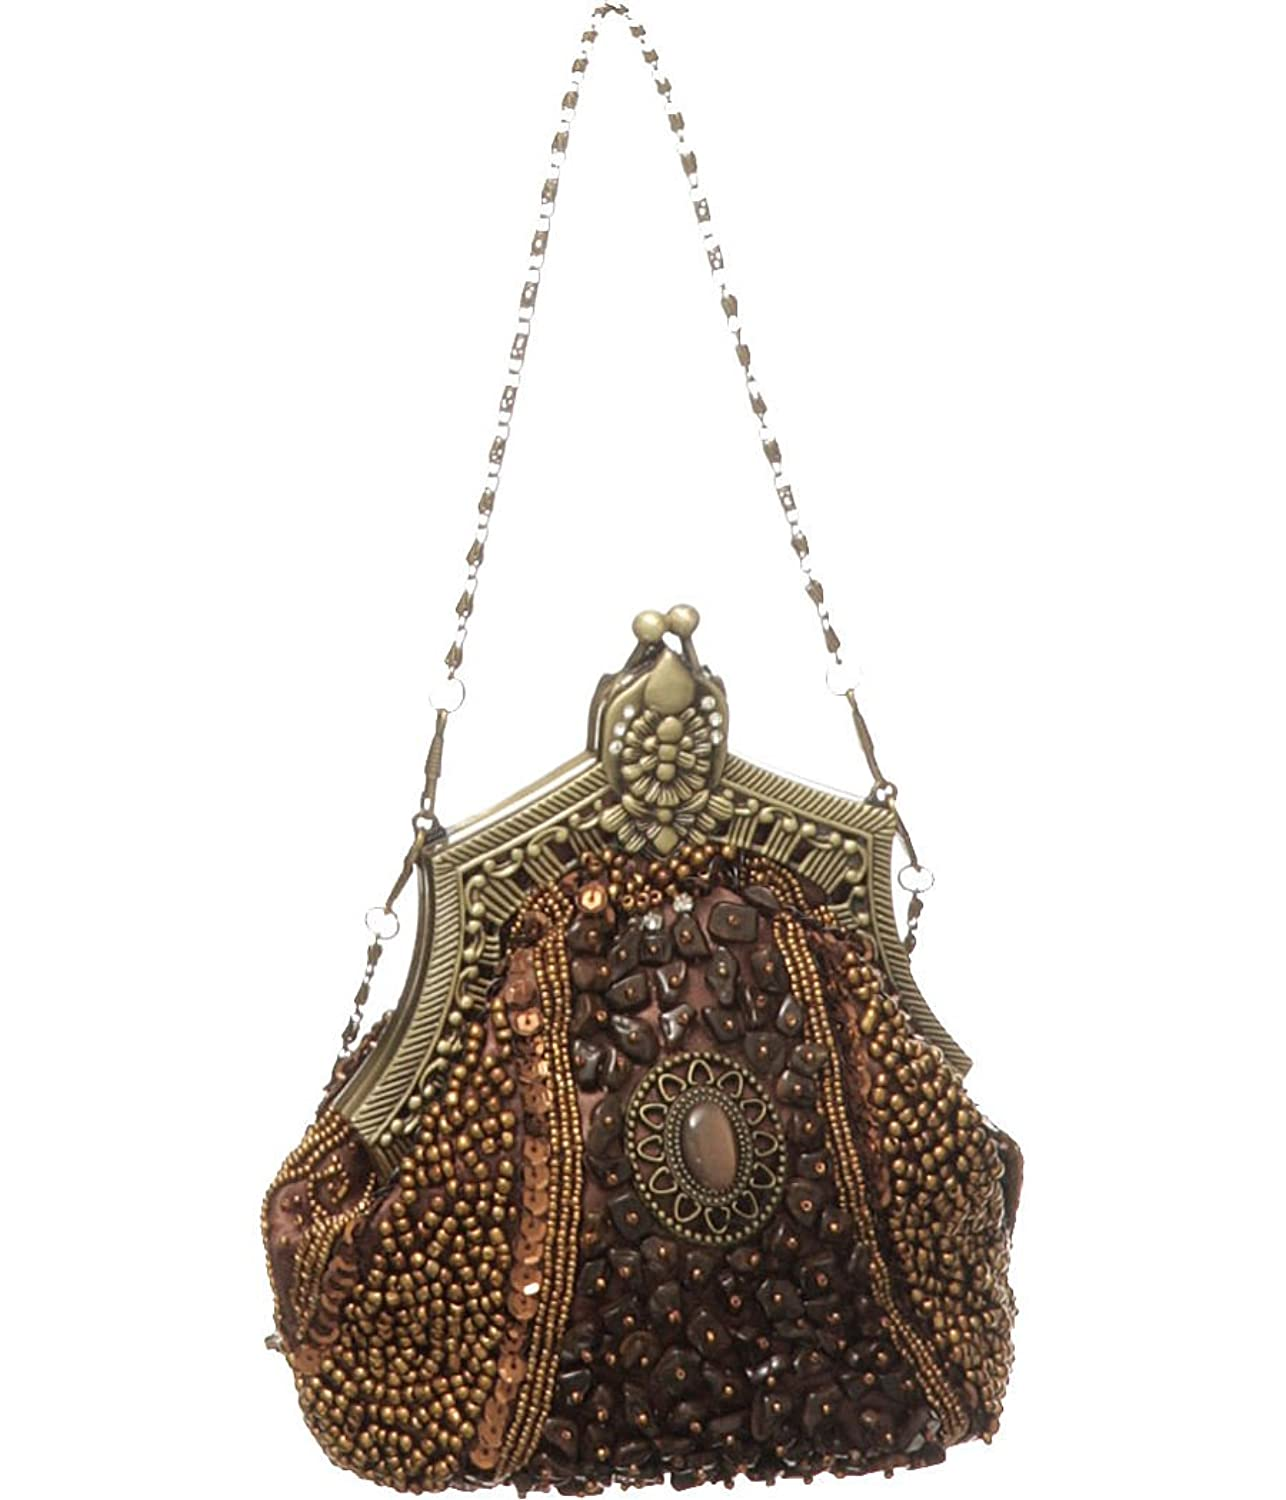 Vintage & Retro Handbags, Purses, Wallets, Bags Beaded Victorian Vintage-Style Evening Clutch $34.95 AT vintagedancer.com